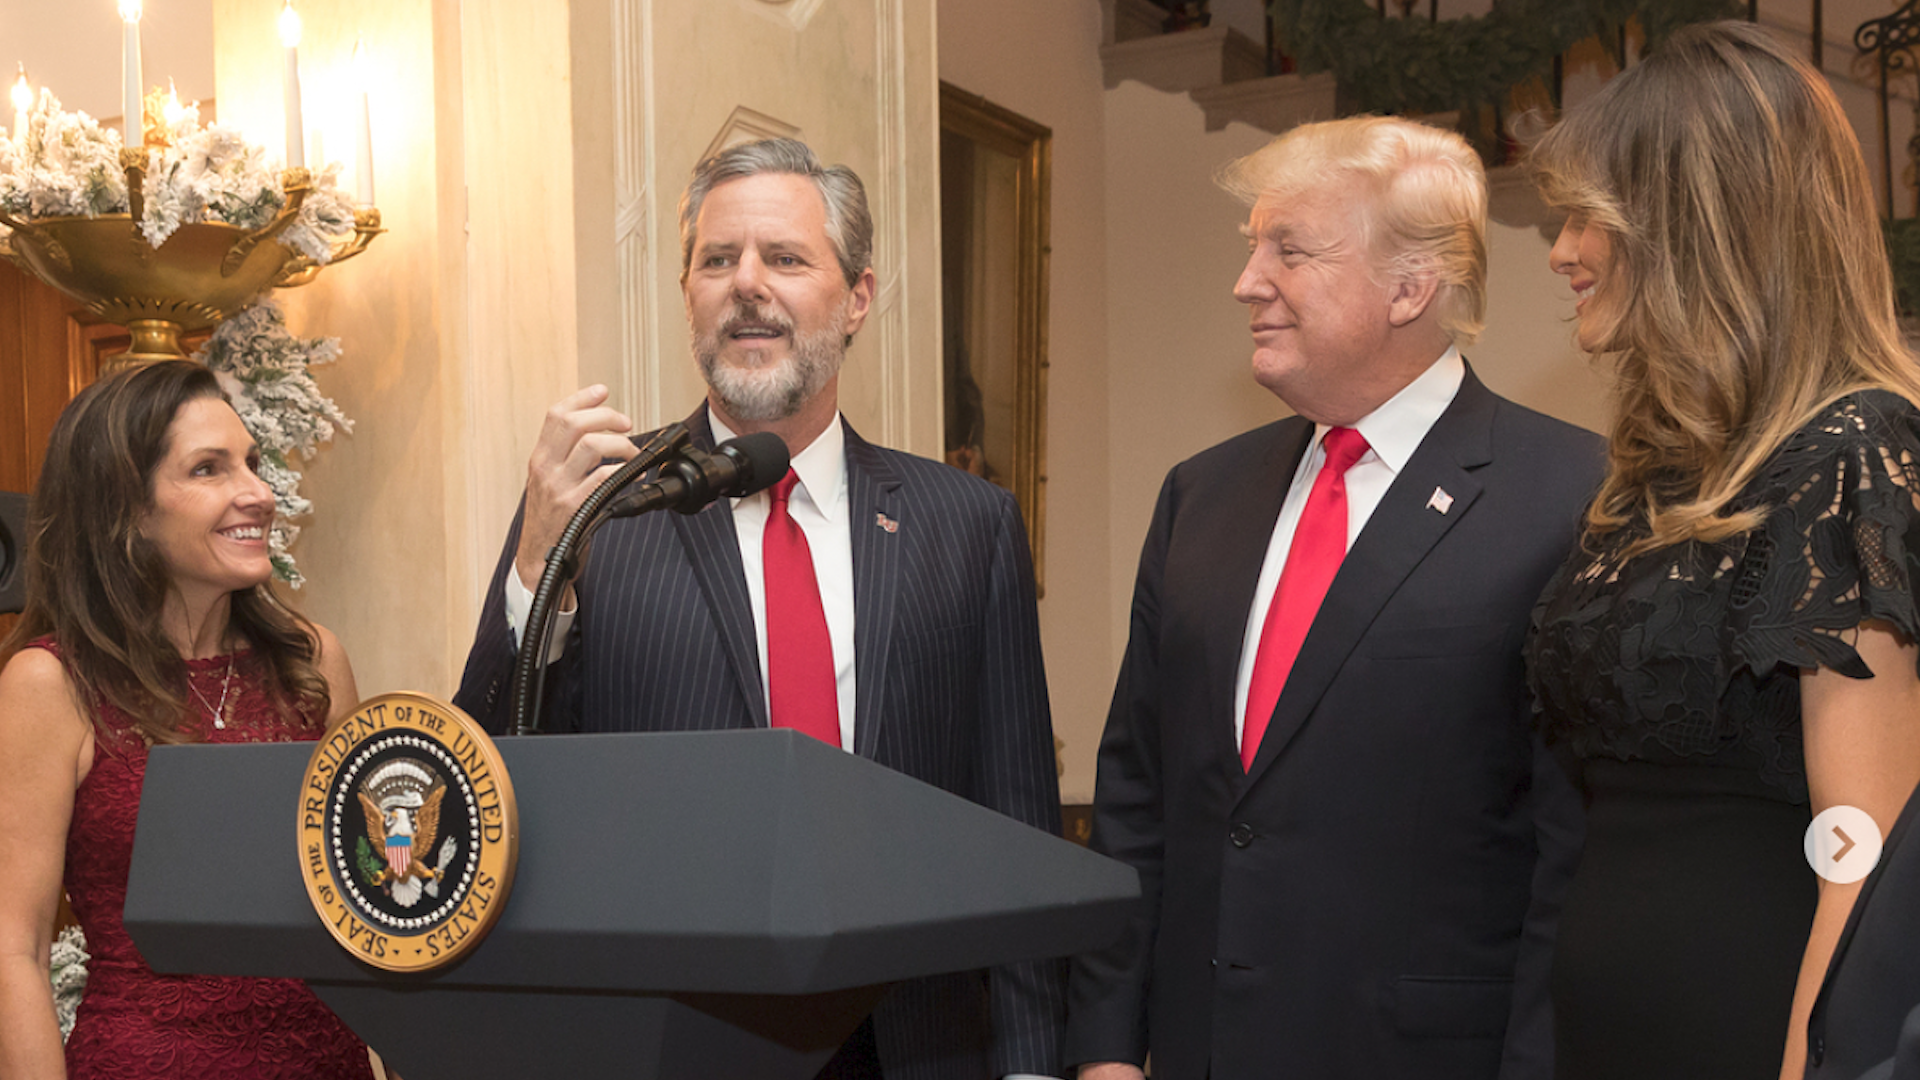 Here's What's Happening With All The Recent Jerry Falwell Jr. Scandals